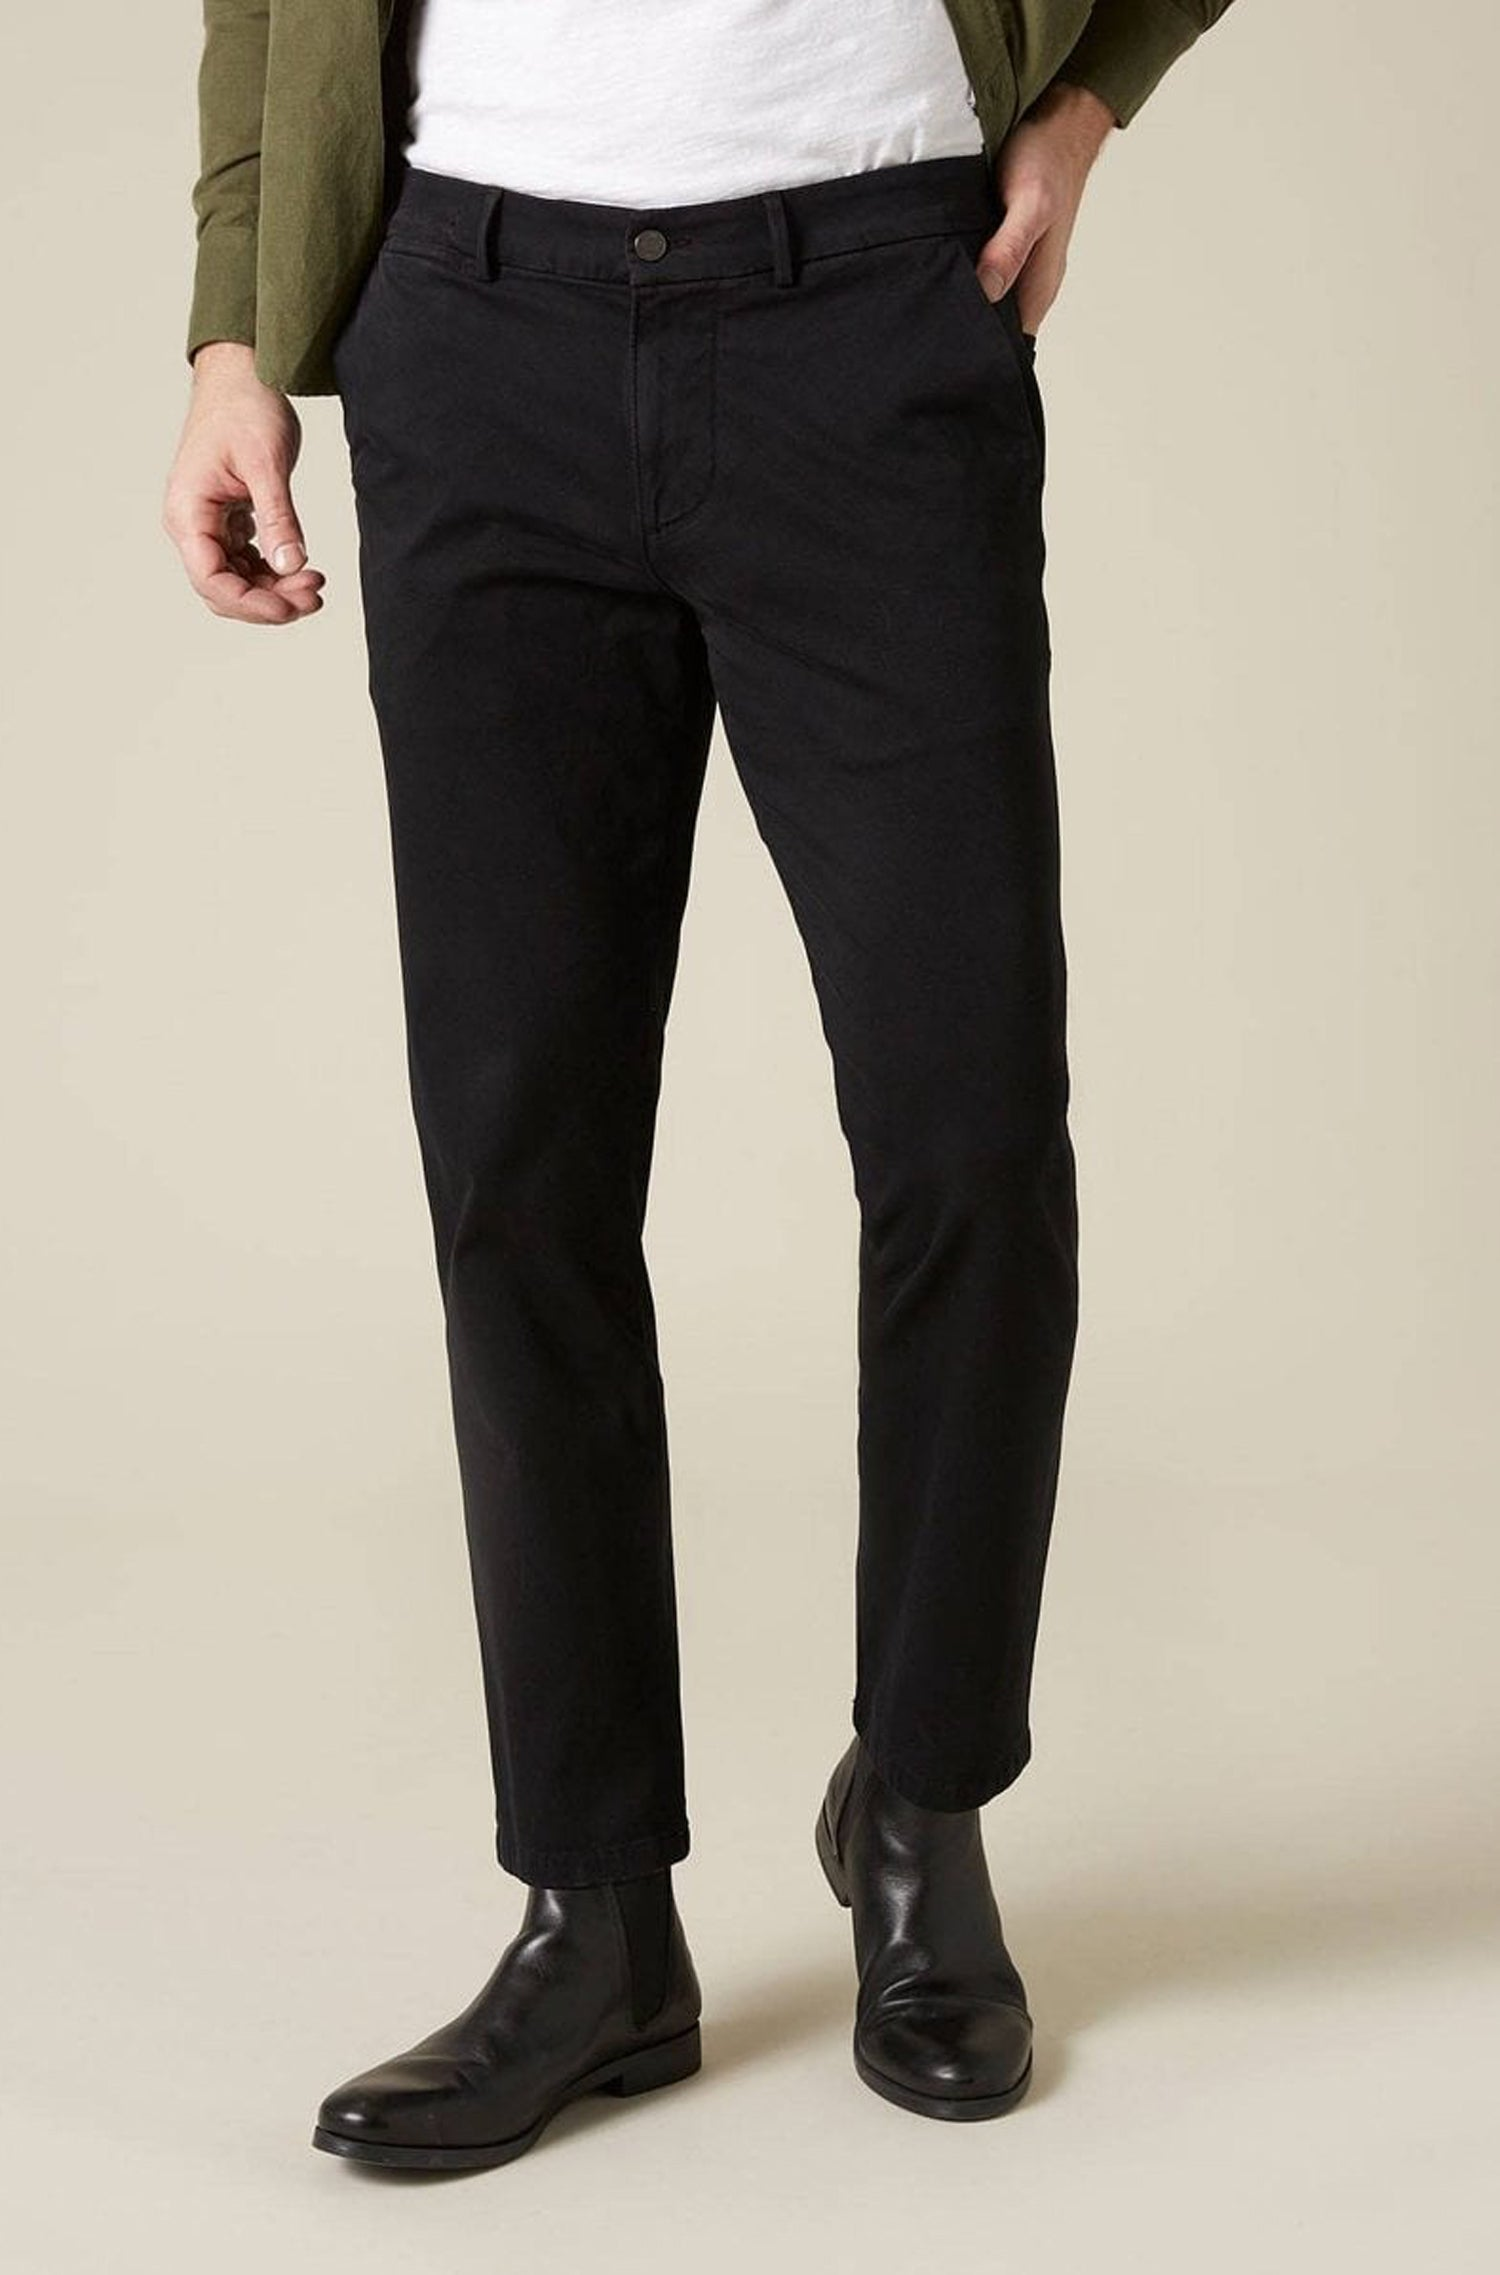 7 For All Mankind - Black Slimmy Chinos in Luxe Perf Sateen Fabric JSU9T490BL